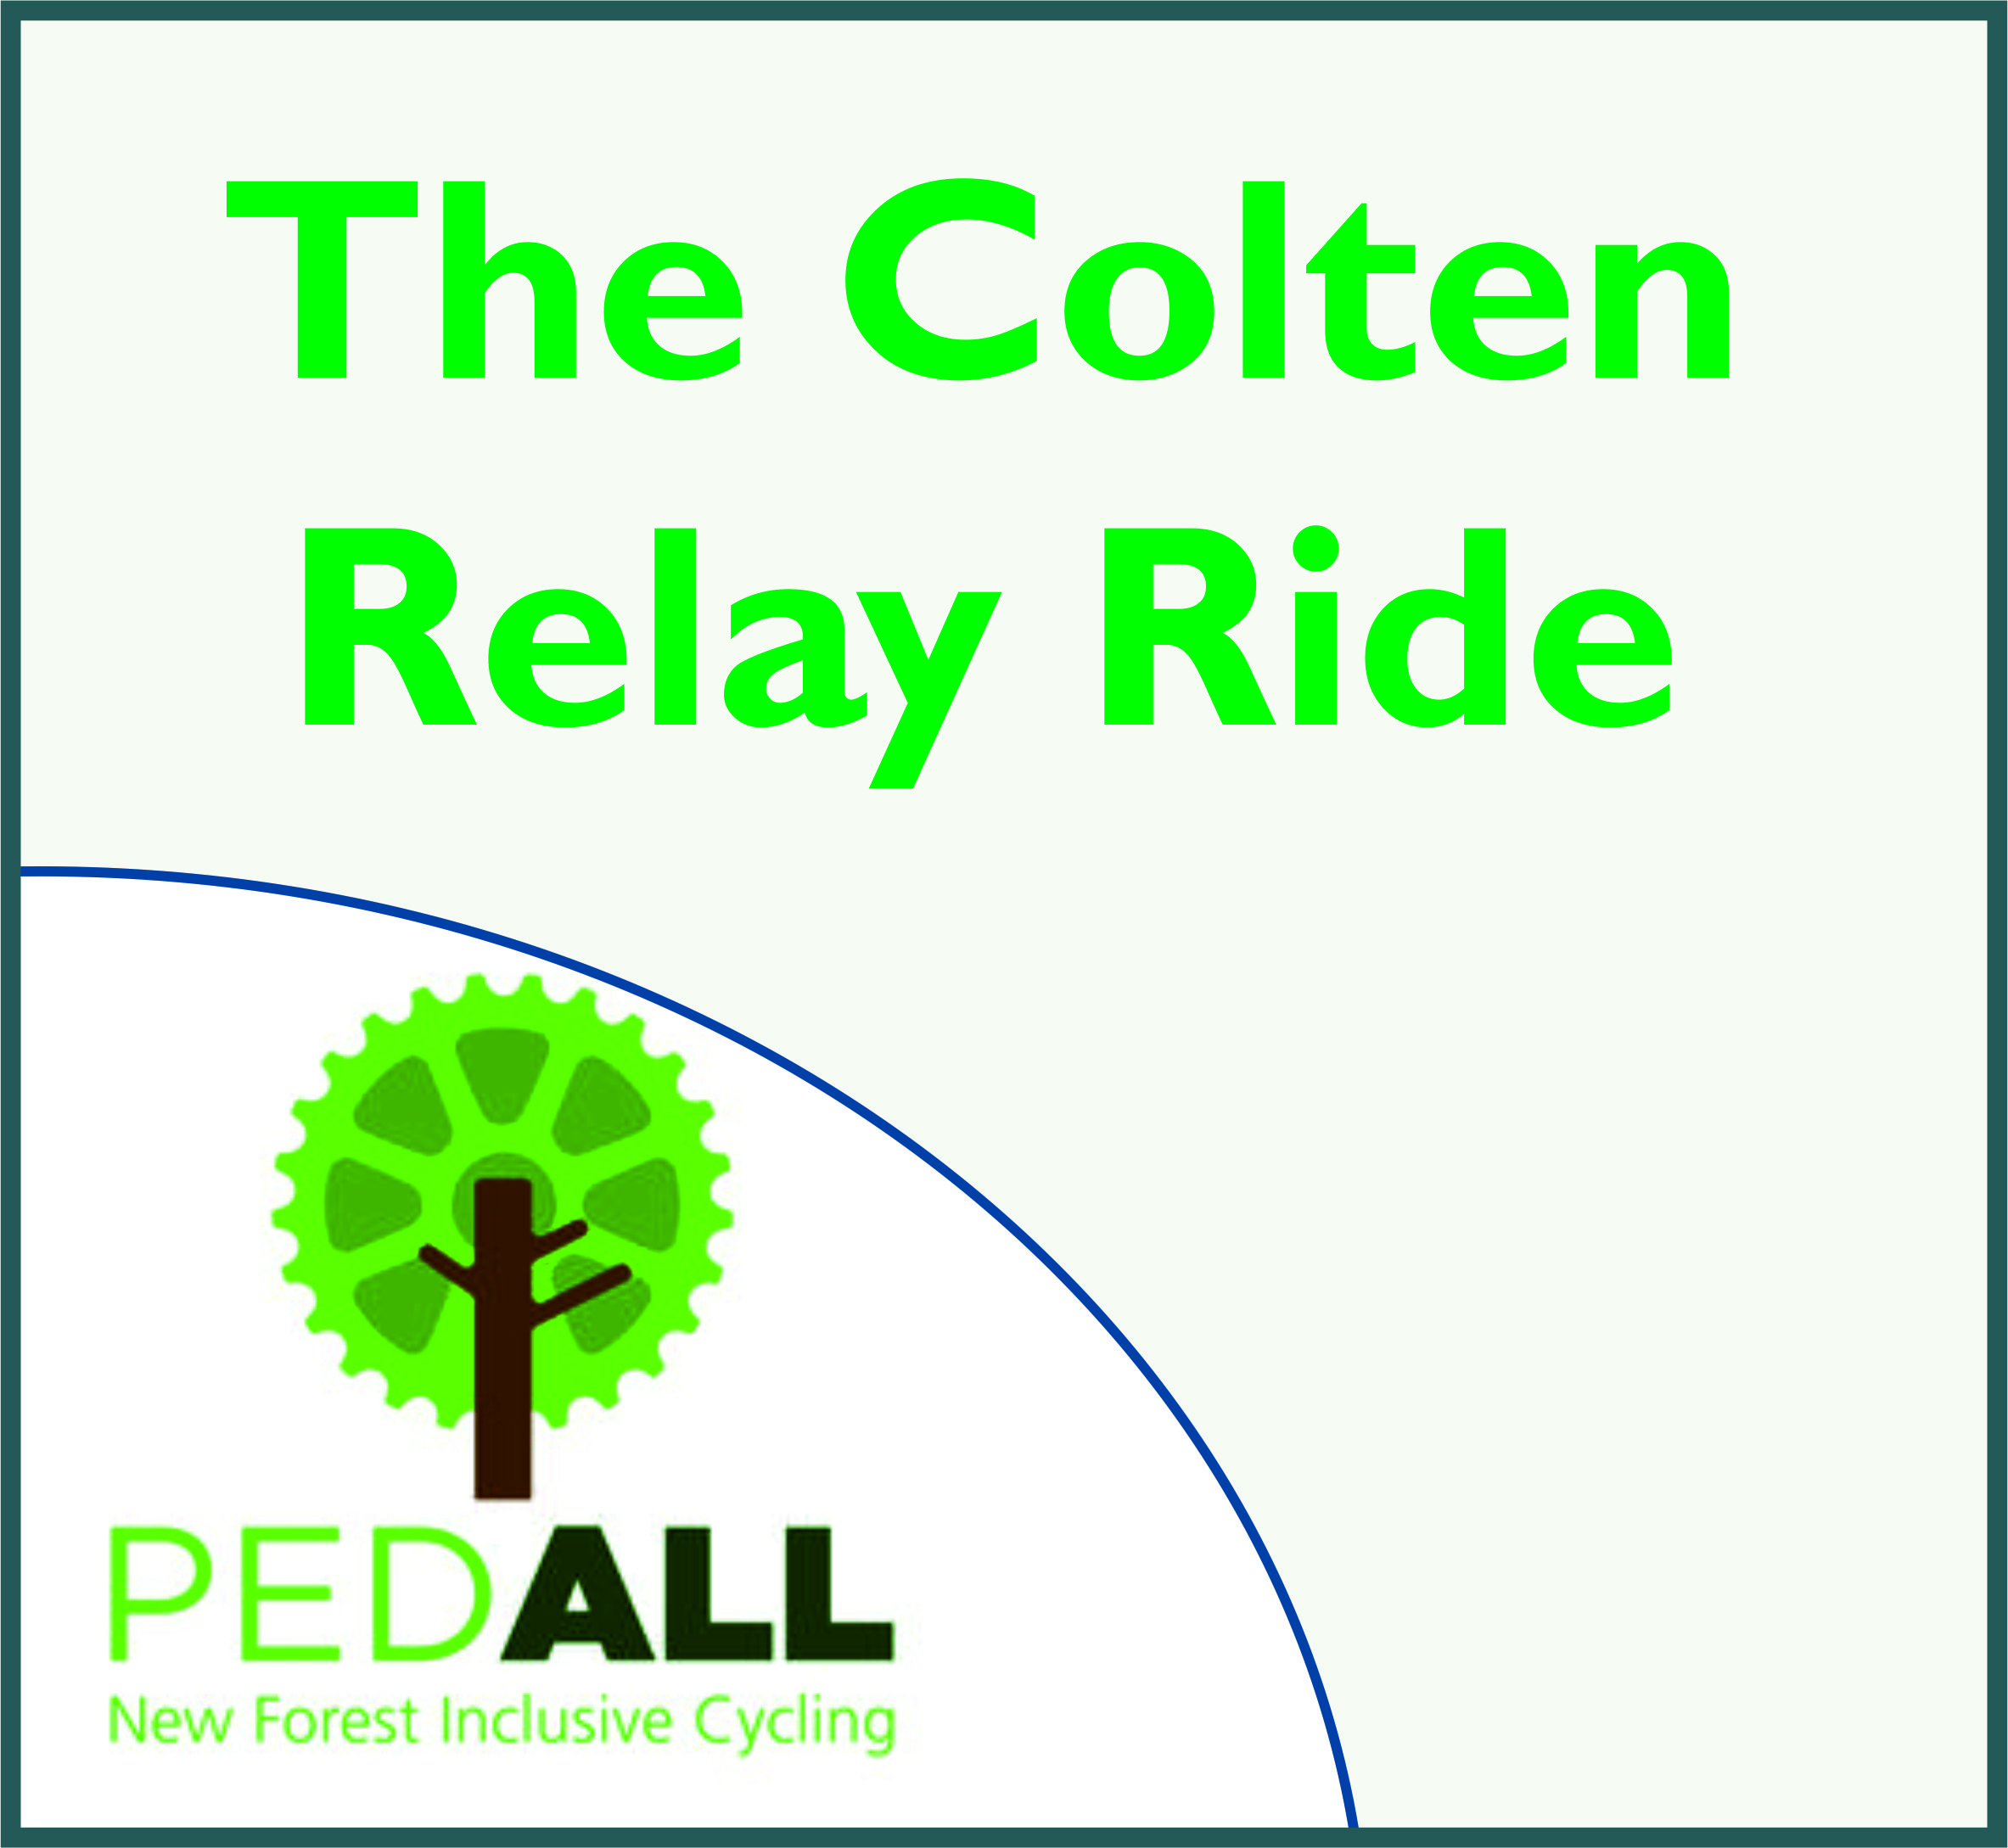 Events Template relay ride thumb